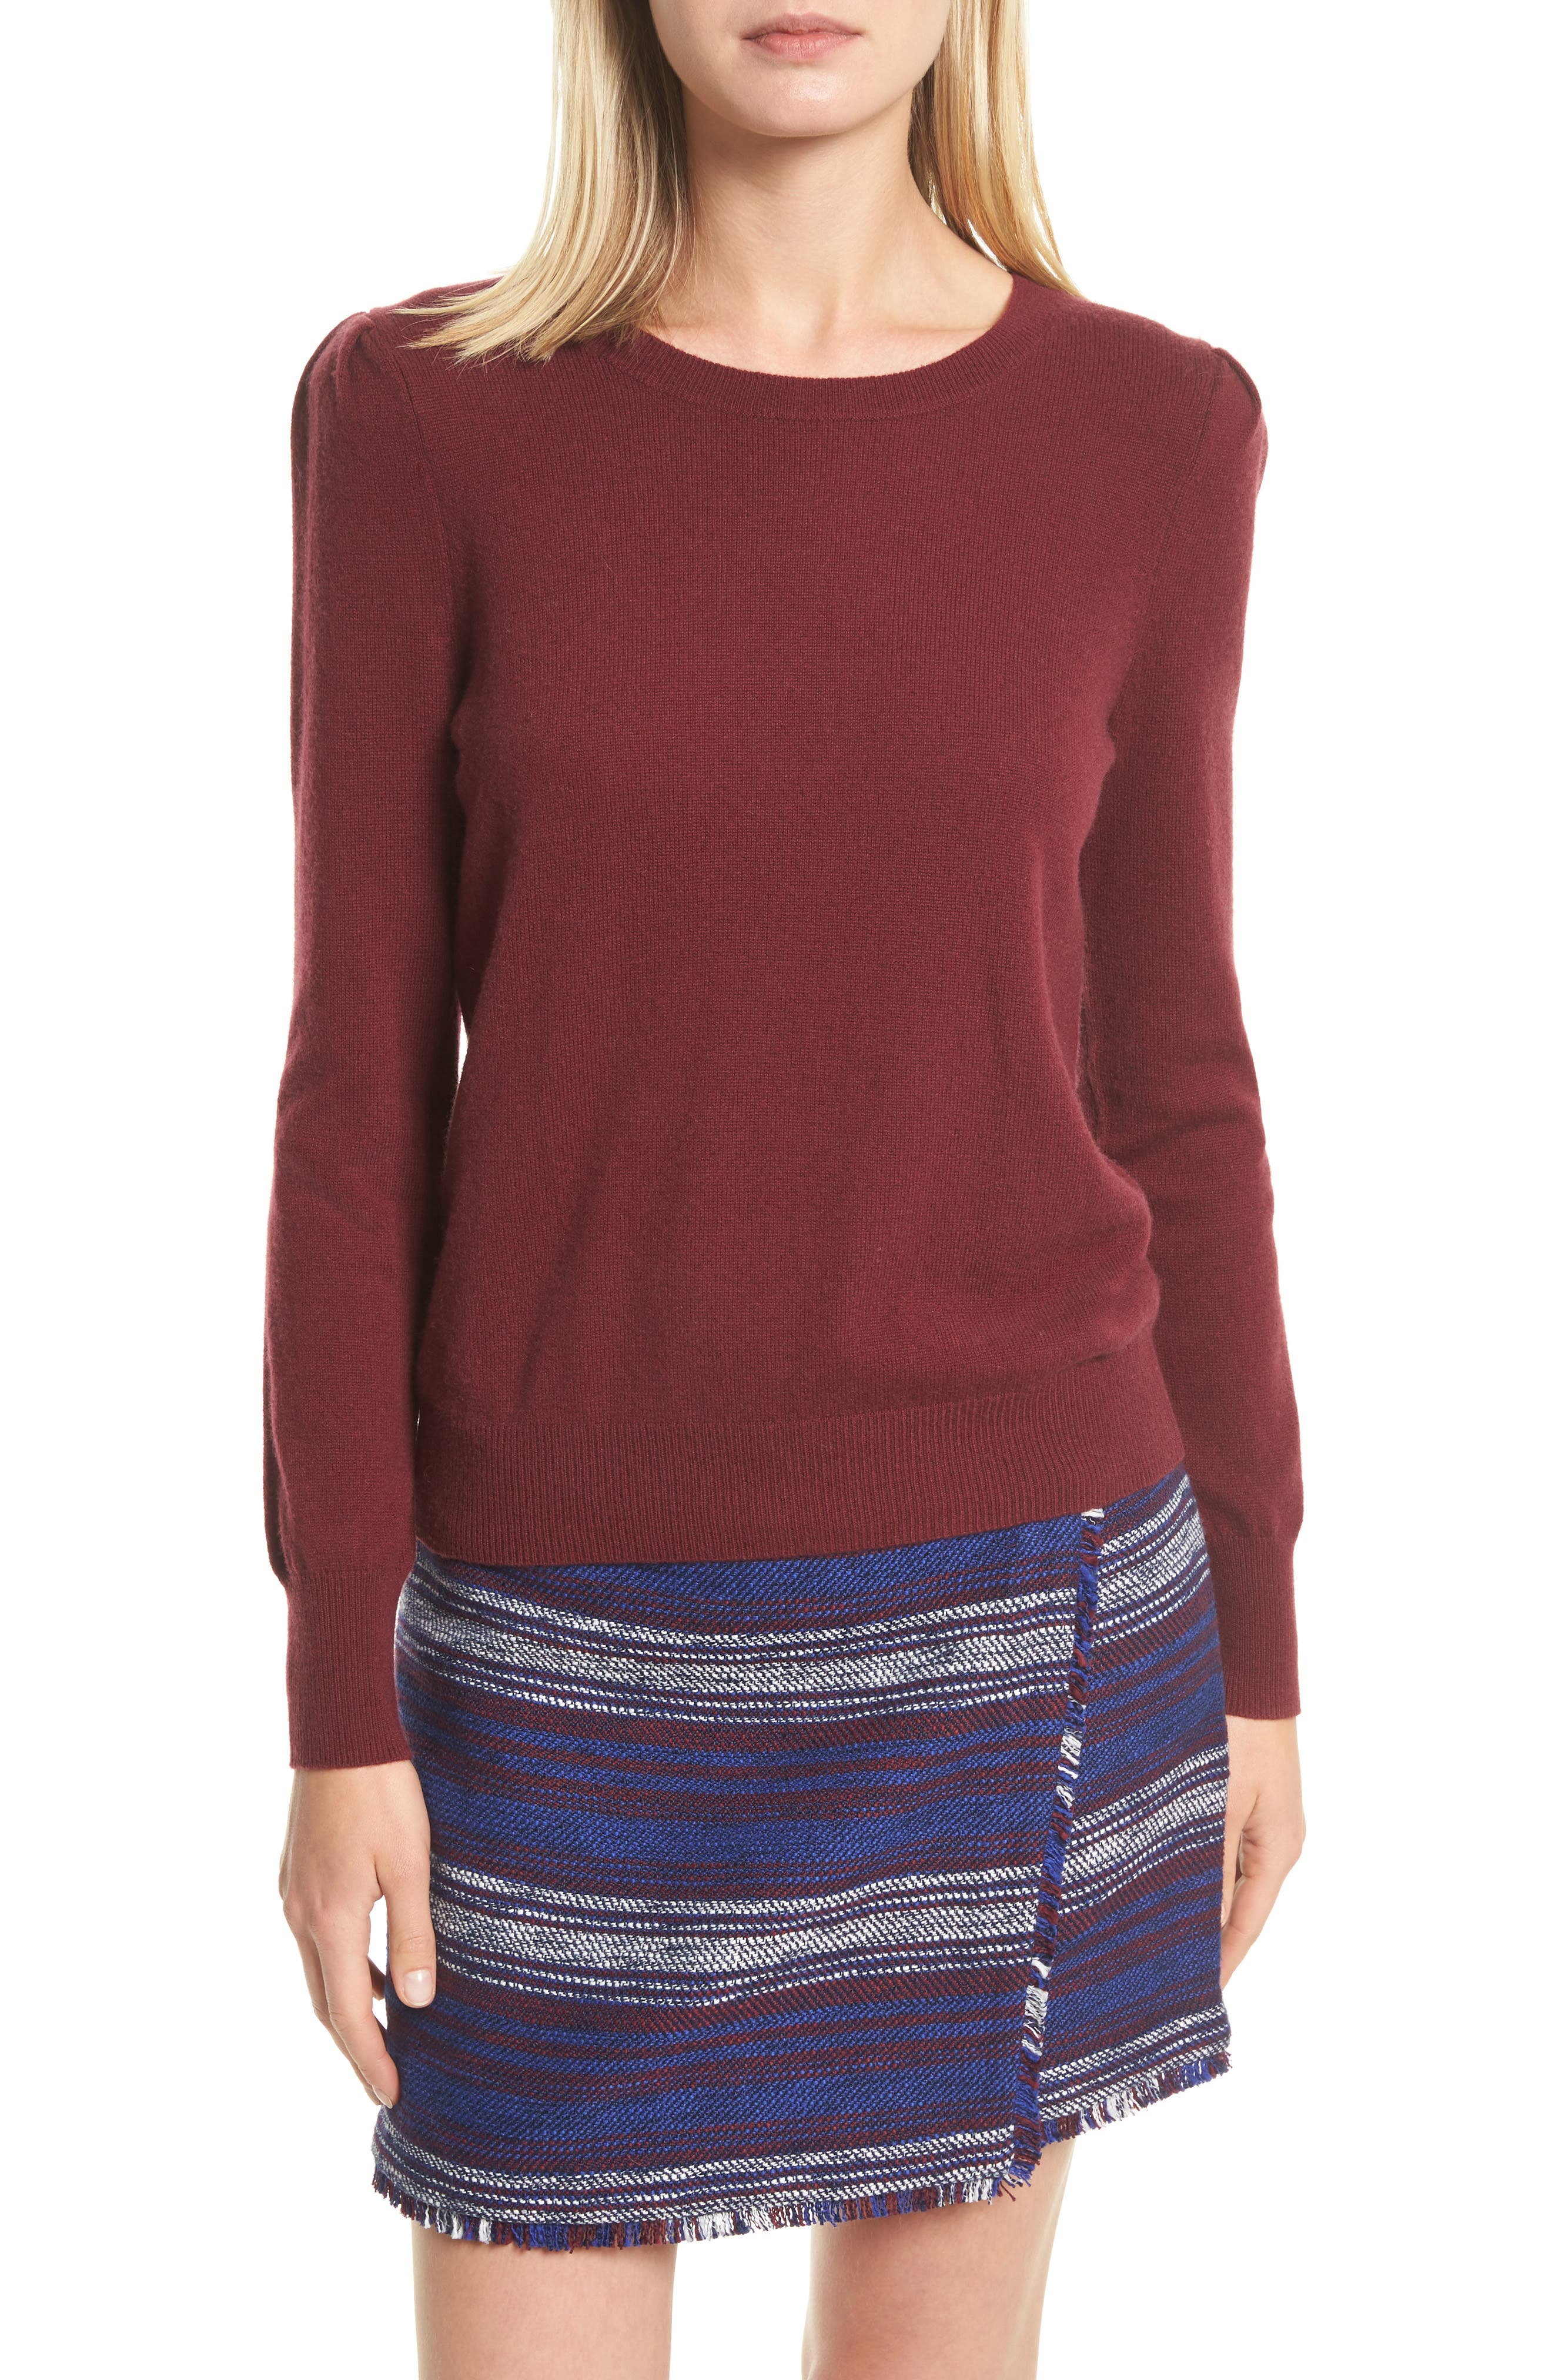 Joie Abiline Wool & Cashmere Sweater